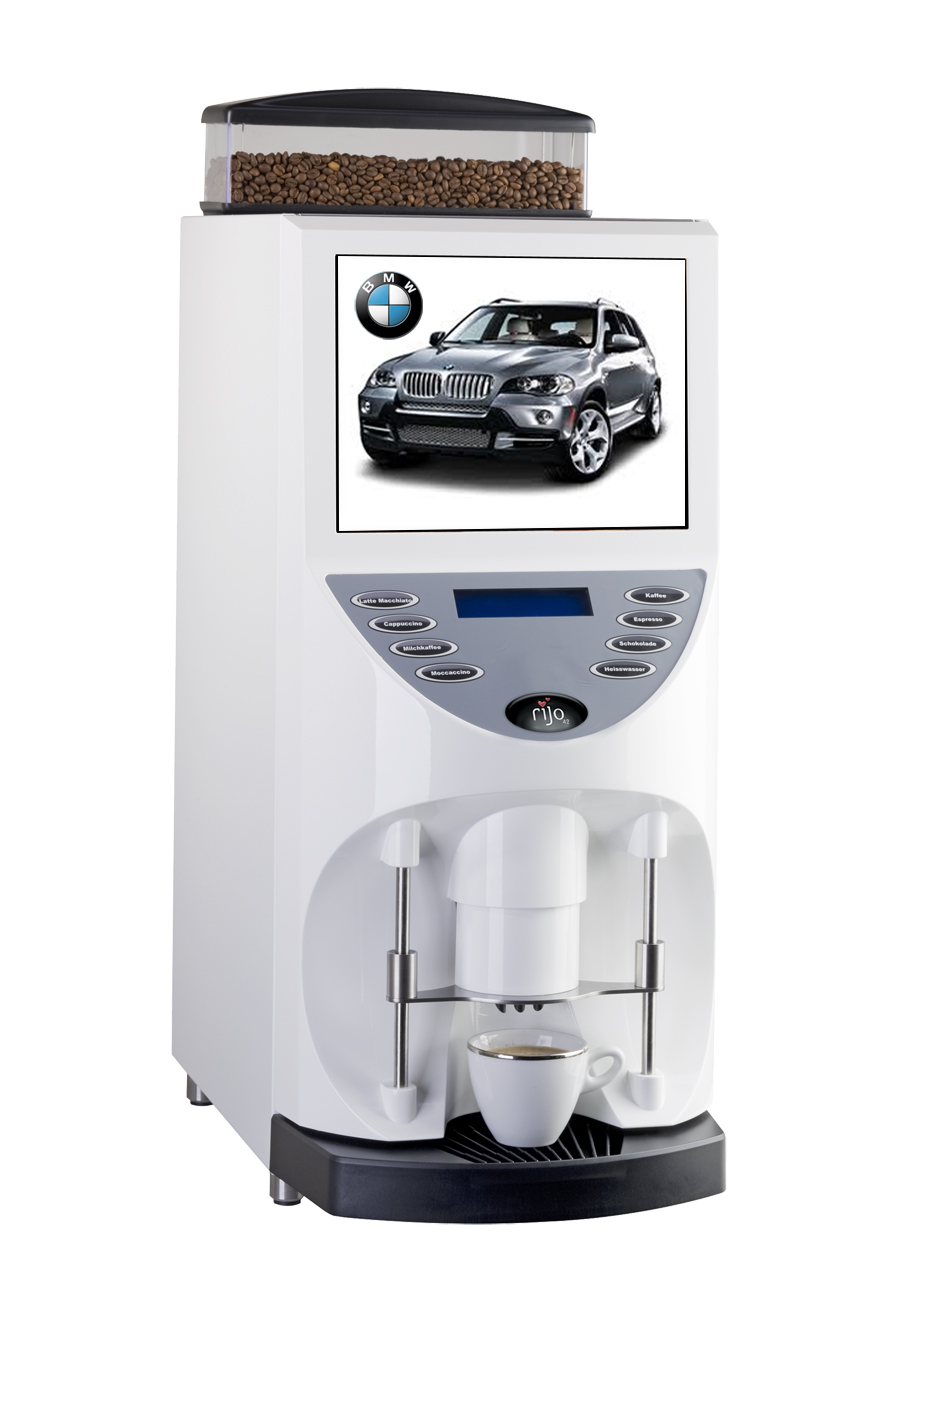 Electronic Real Coffee Machine the real spirit of coffee machines for your showroom rijo brasil rsd is worlds first multimedia machine an attractive marketing tool integrated screen makes it possible